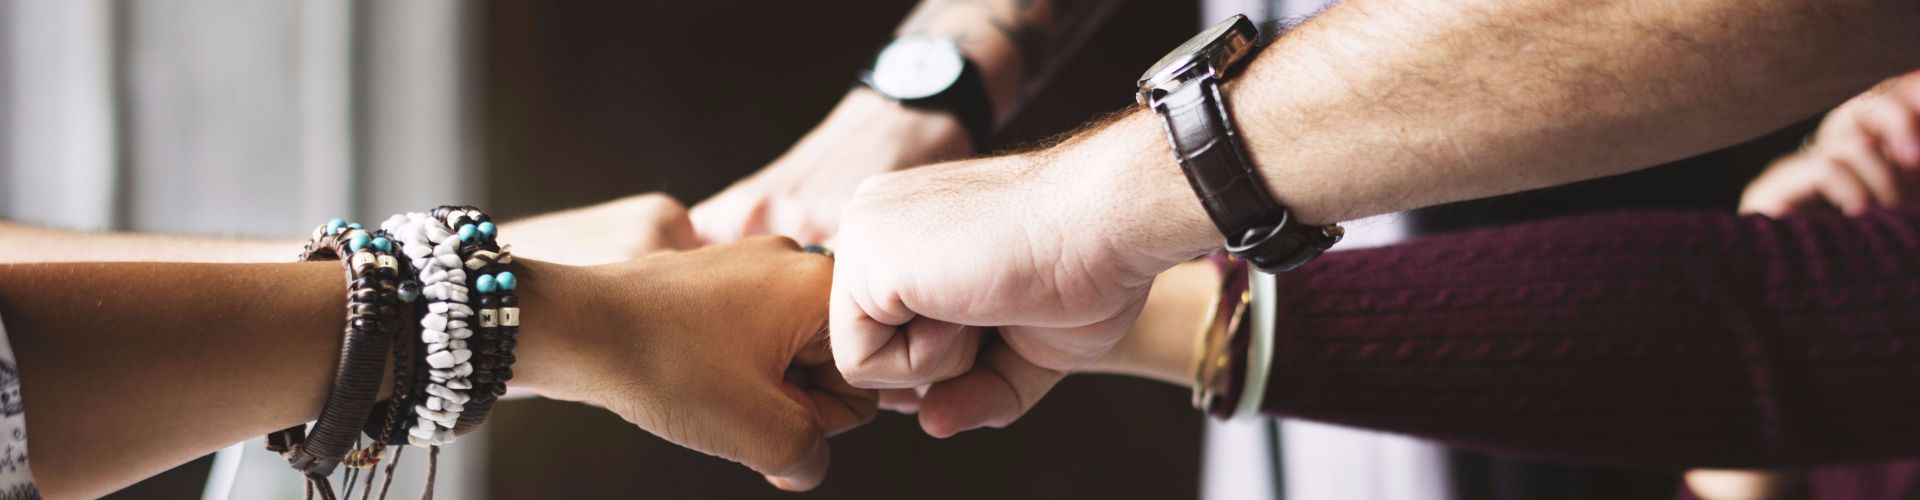 tips for building your small business team